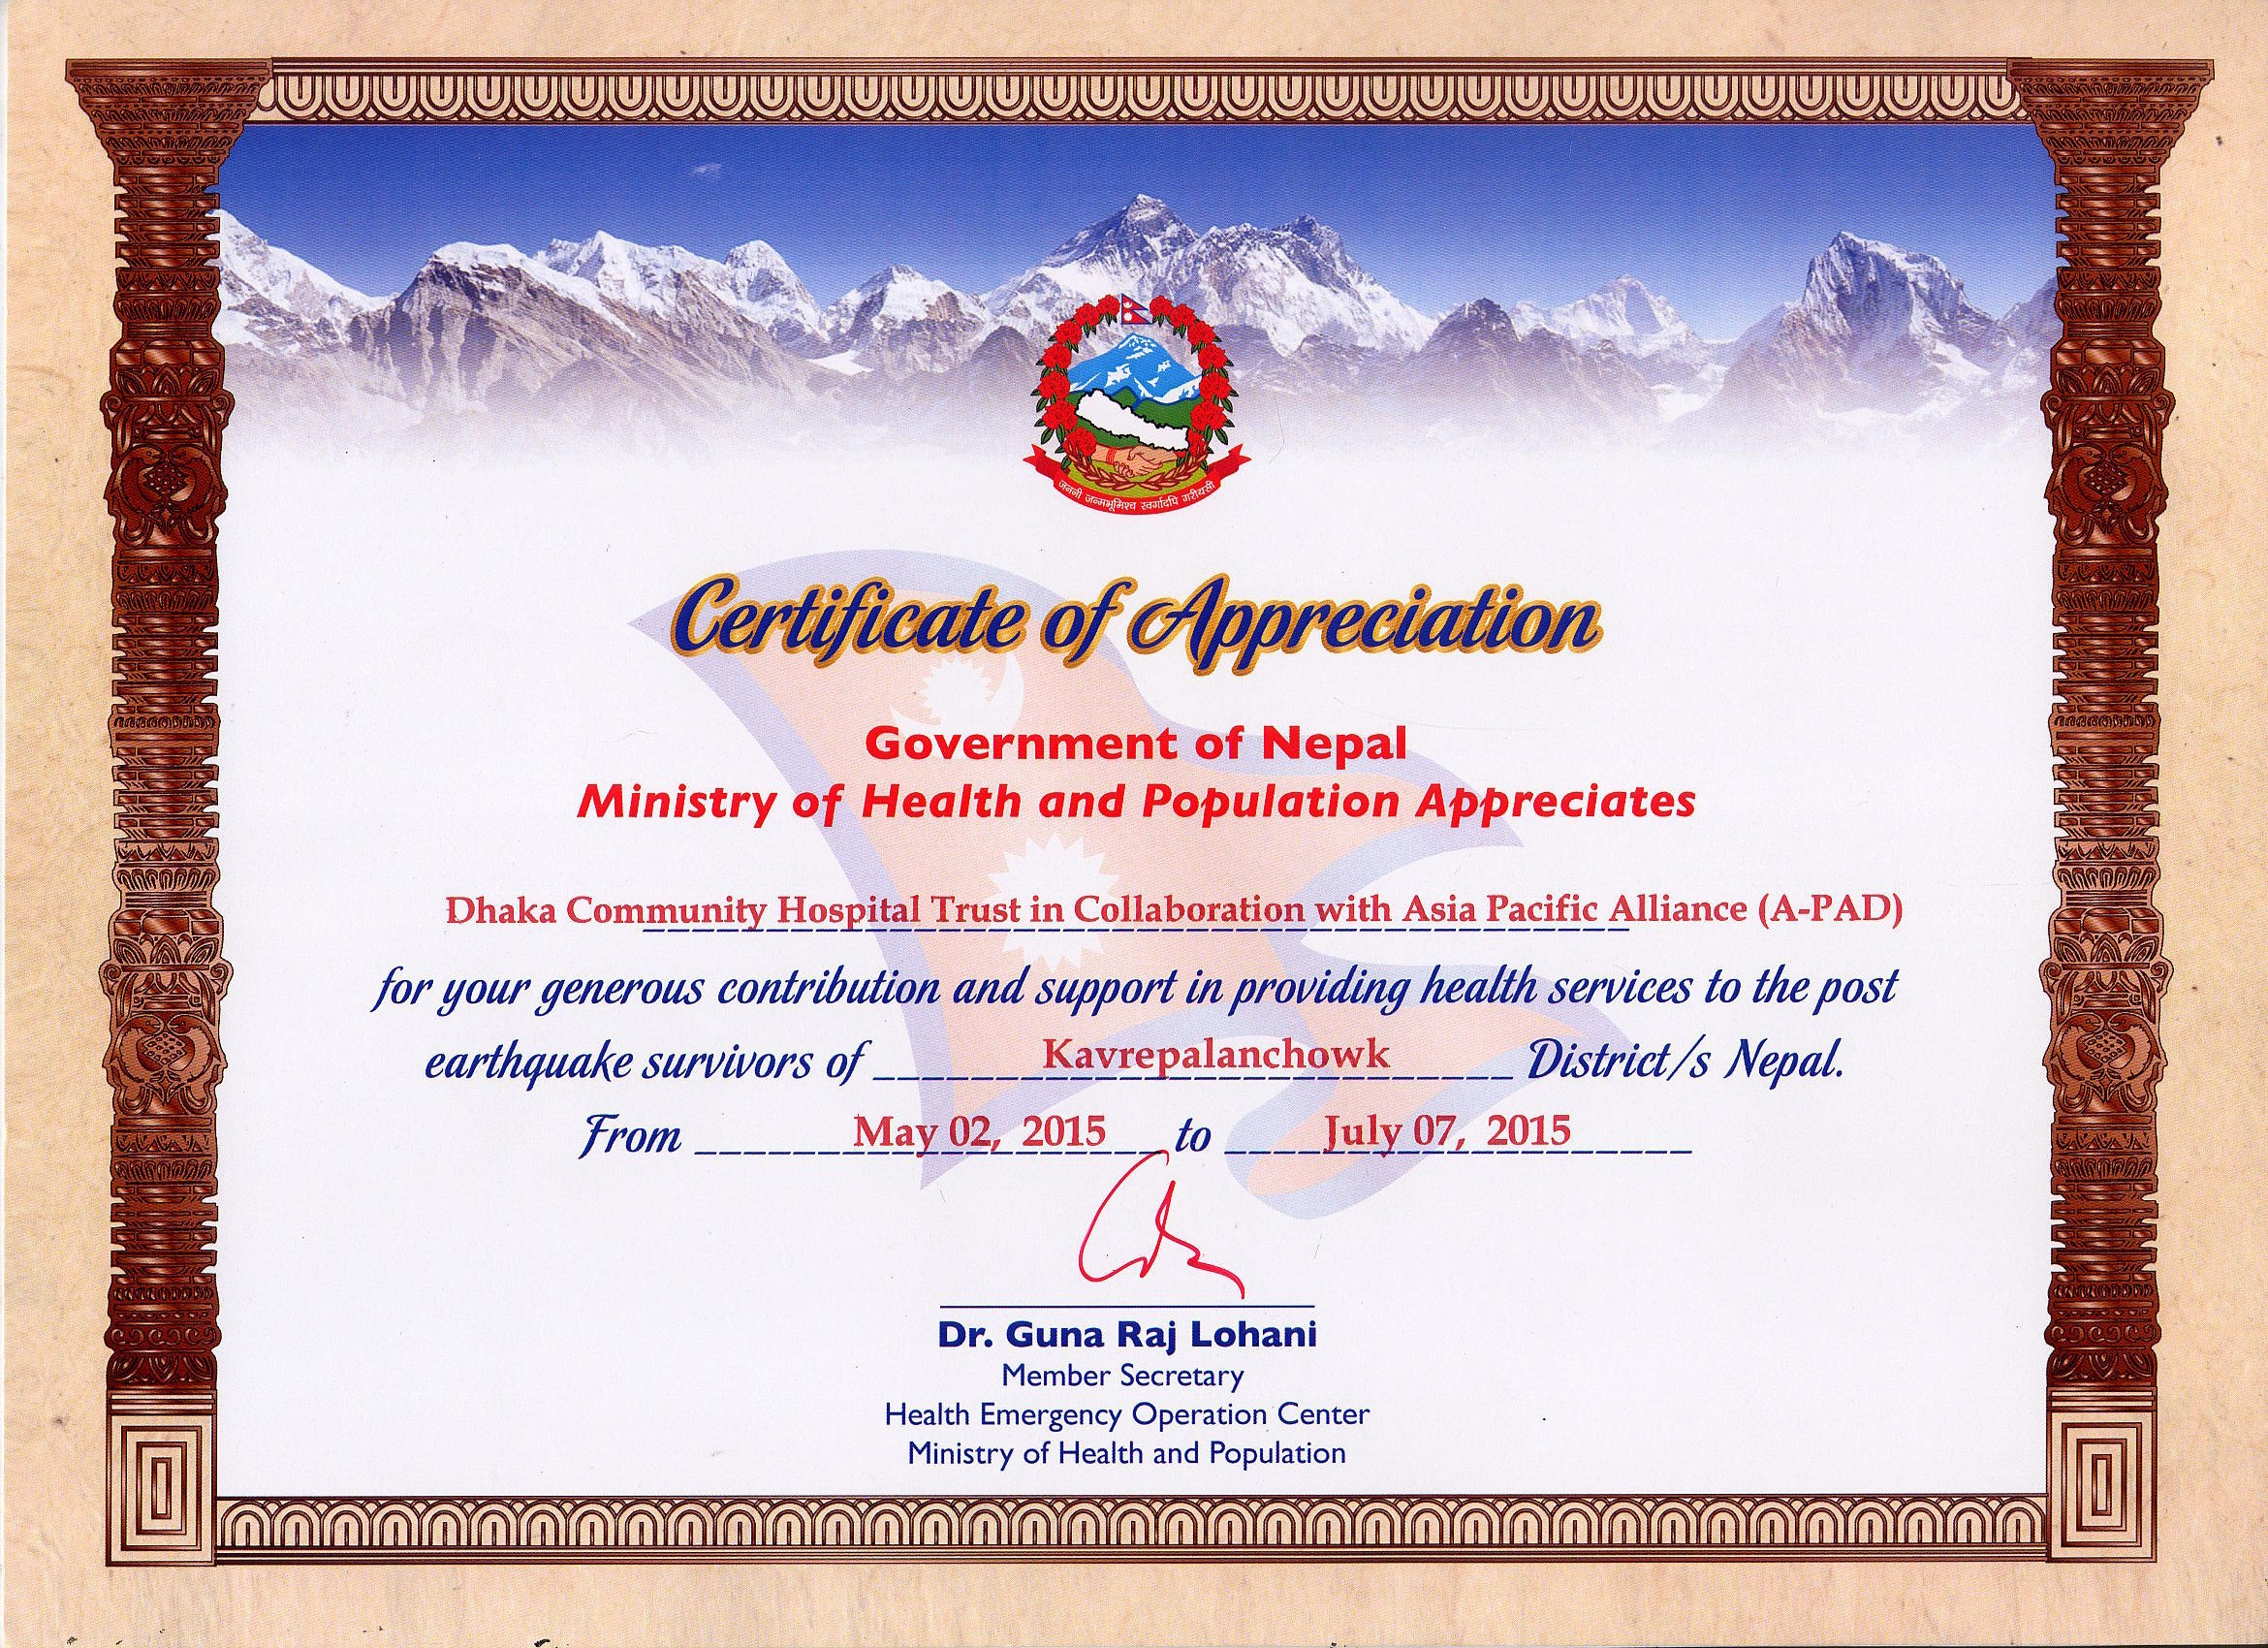 Print media news on appreciation certificate to dch trust a pad appreciation certificate of nepal earthquake response yelopaper Choice Image